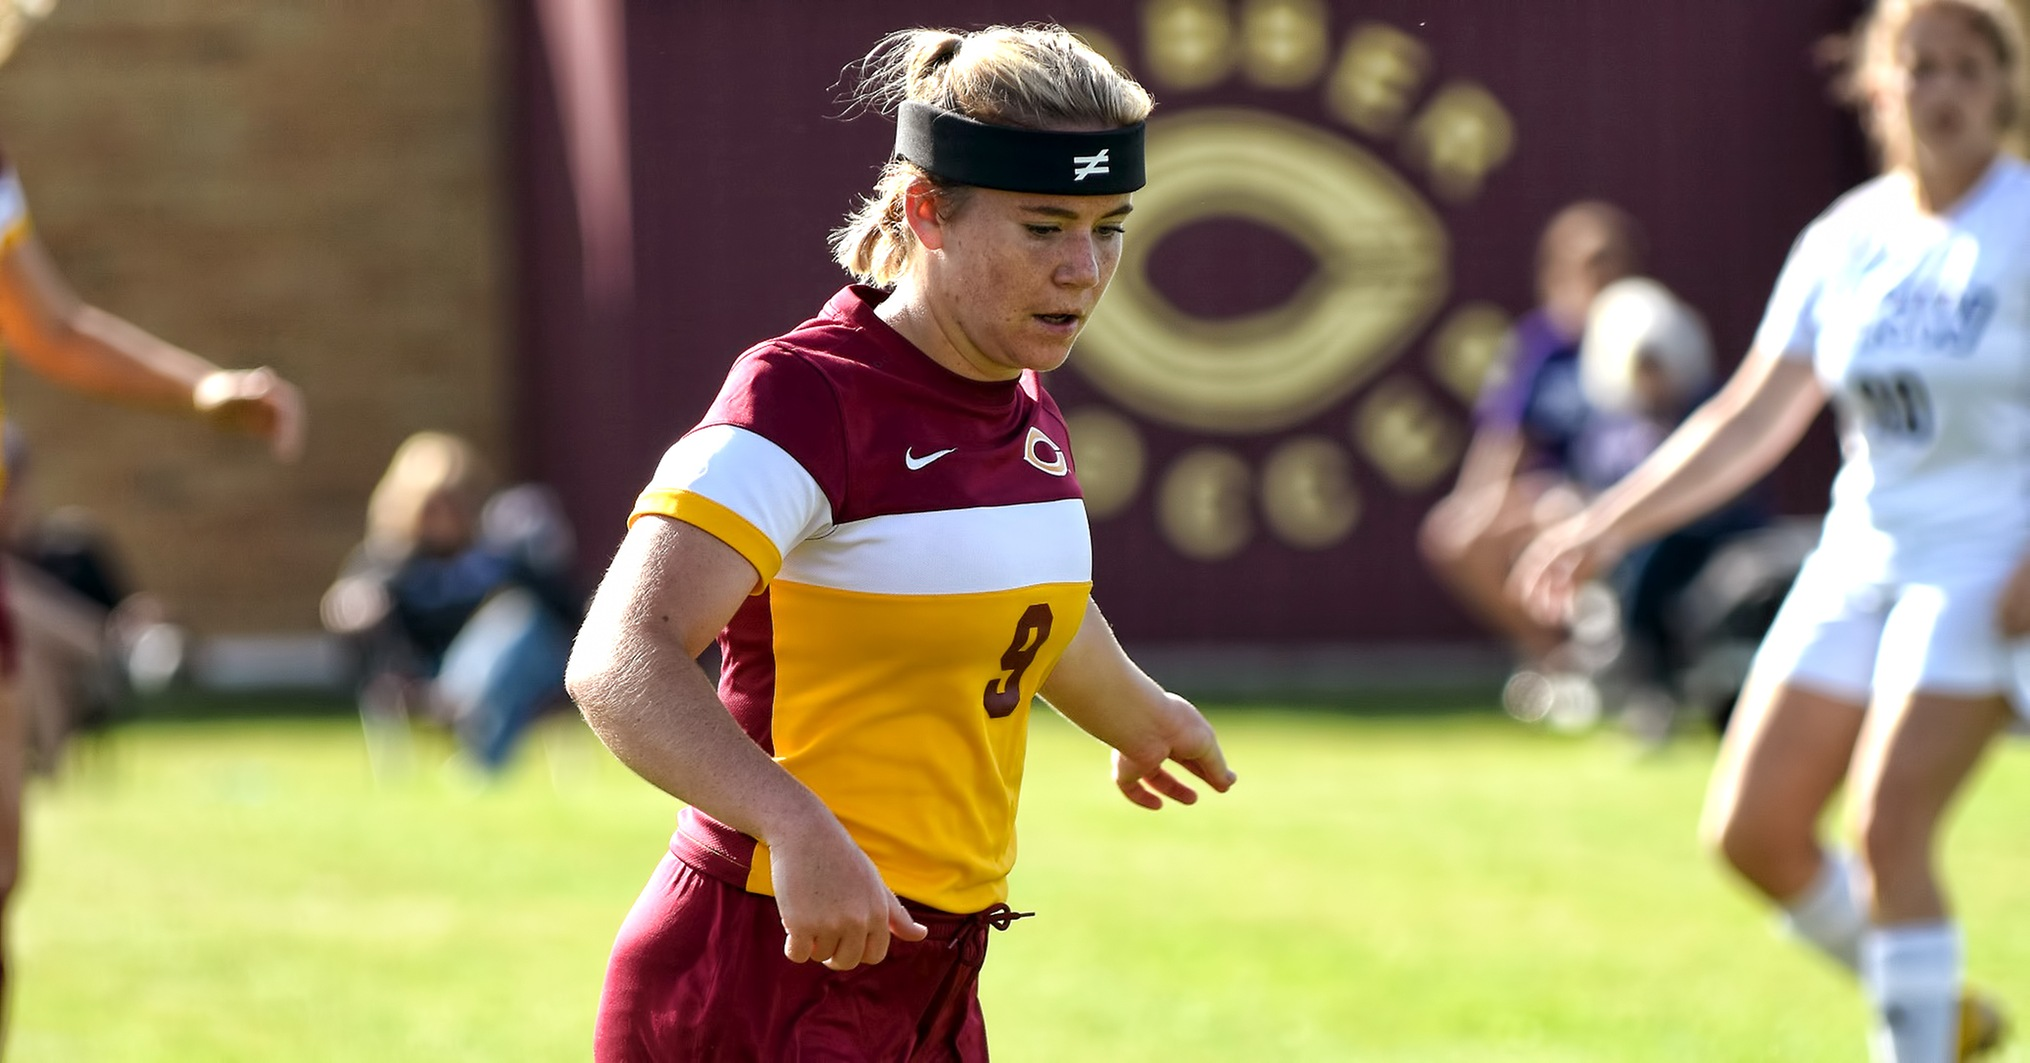 Freshman Grace Lawlor scored her first collegiate goal against Wis.-Superior. It was the game-winning score in the Cobbers' 3-0 win.